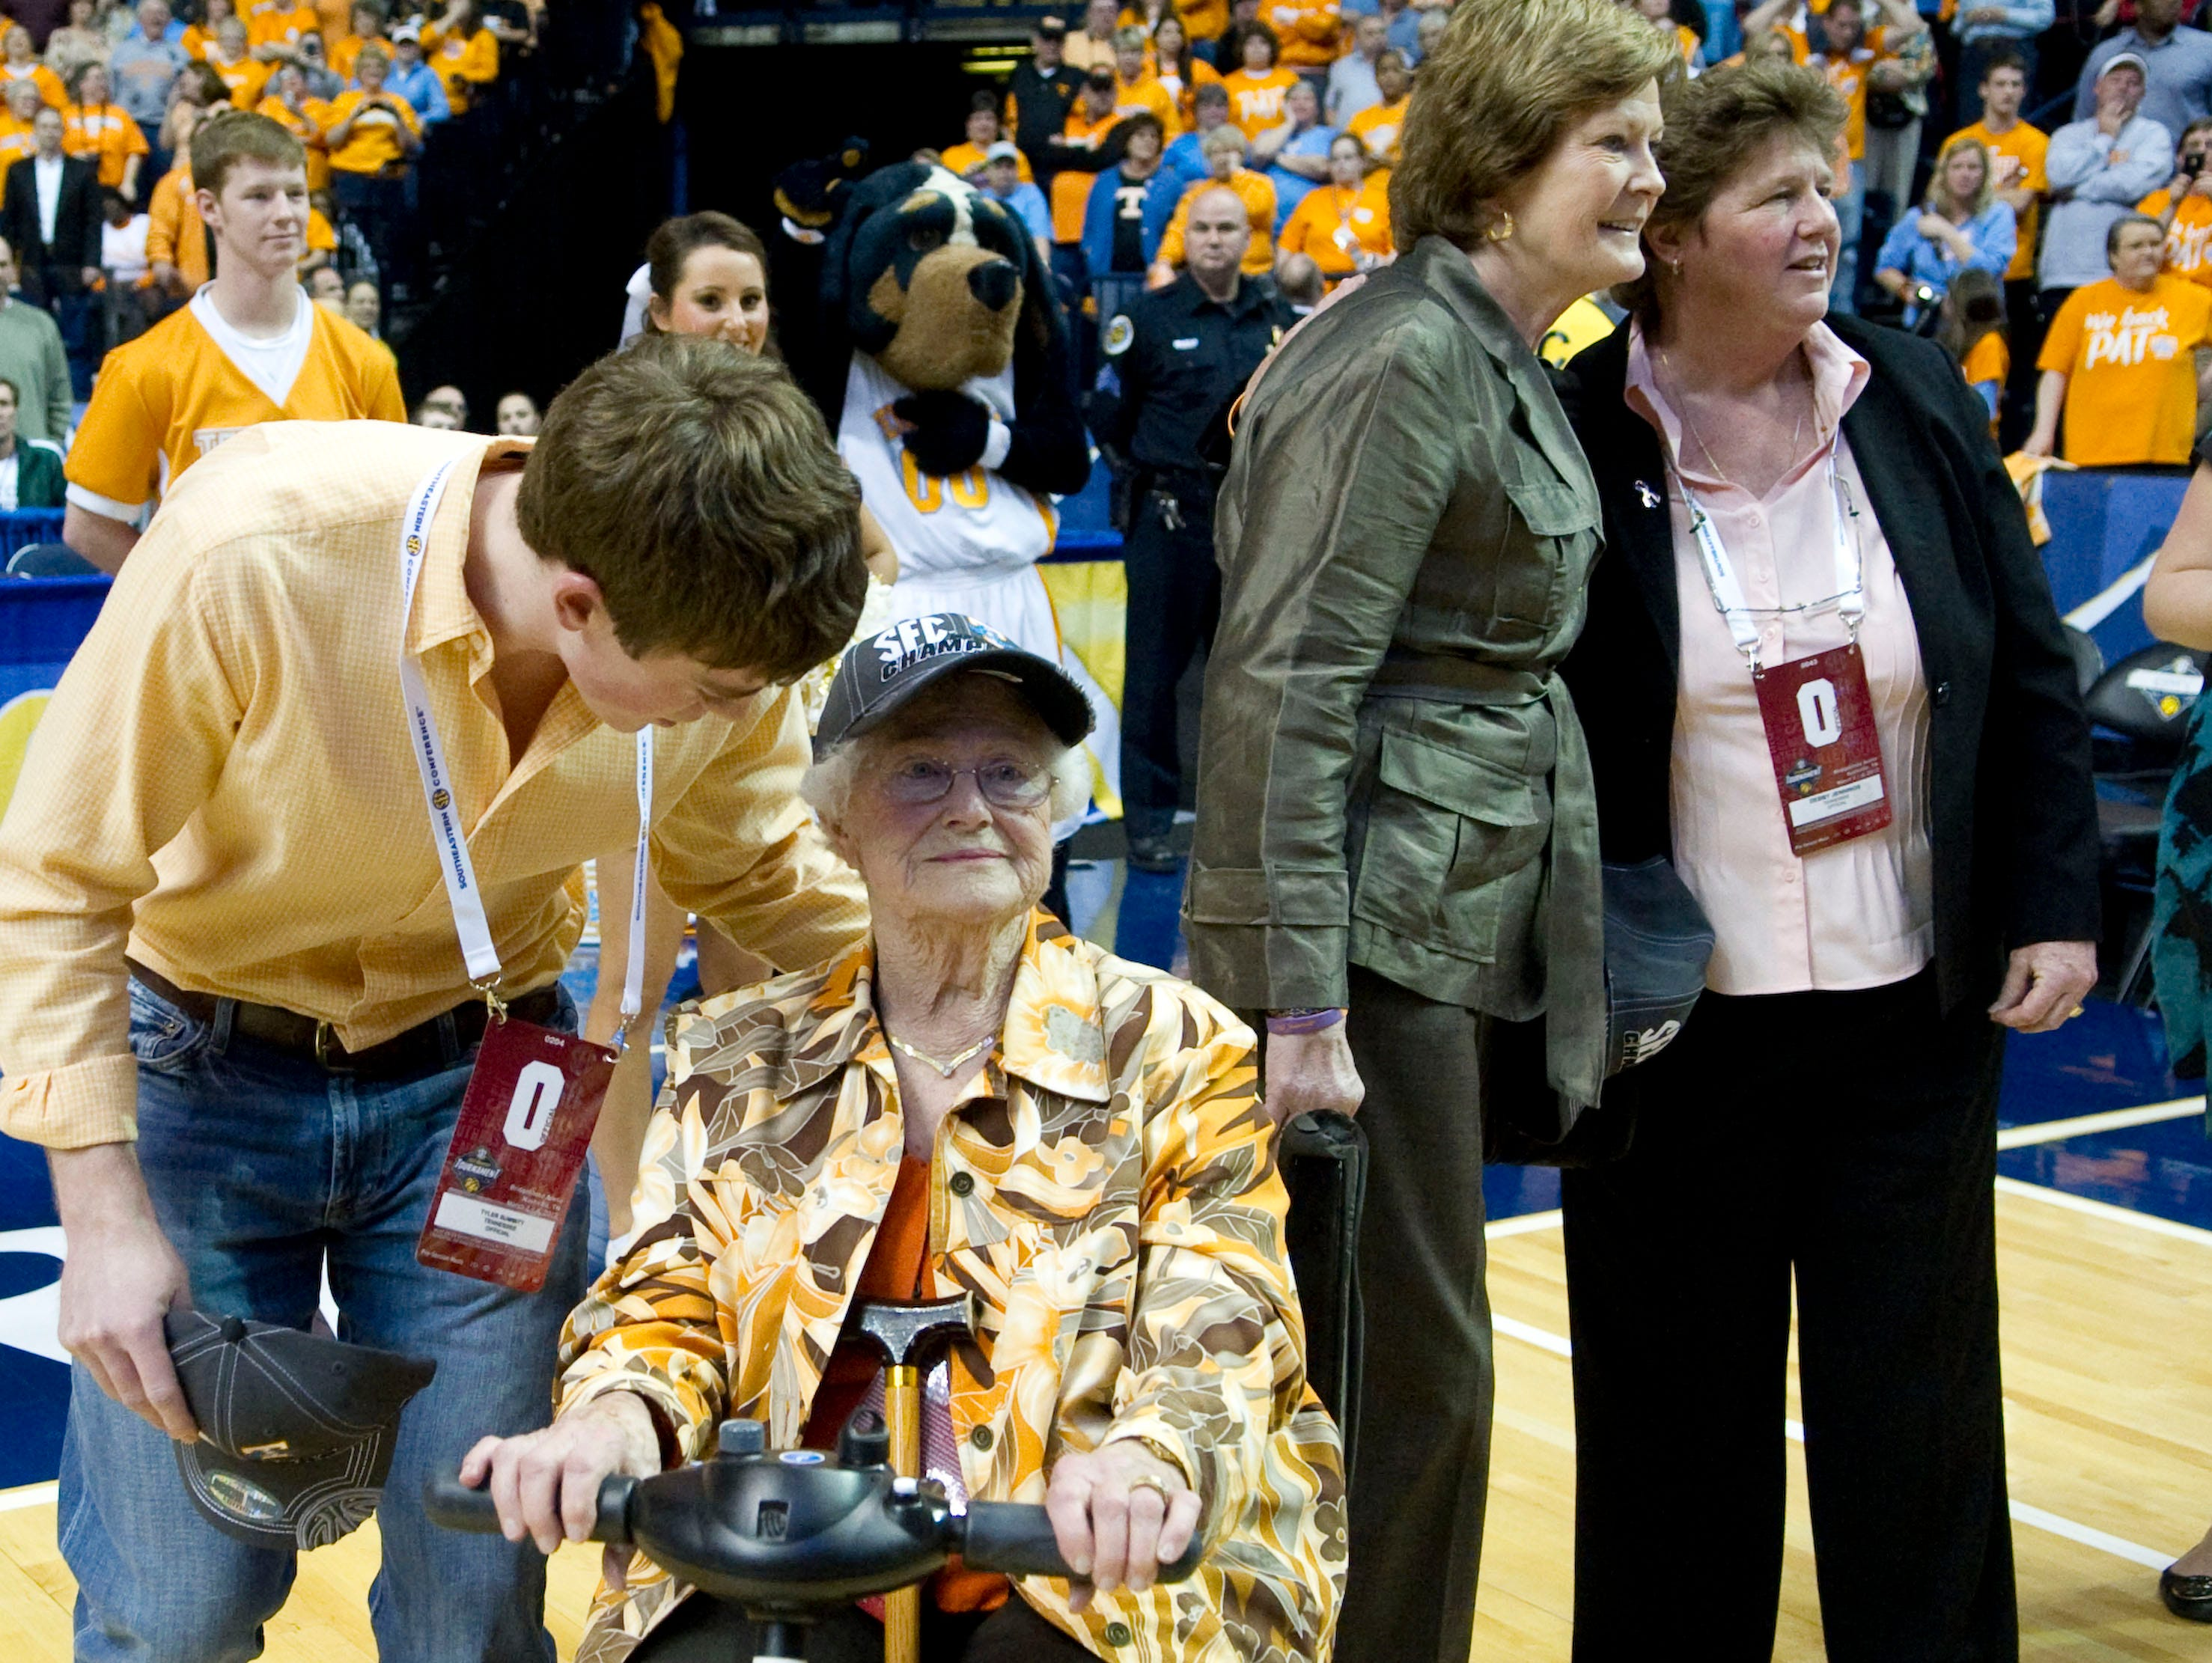 Tyler Summitt talks with his grandmother, Hazel Head, and Tennessee head coach Pat Summitt talks with Debbie Jennings, Associate Athletics Director for Media Relations during the celebration of Tennessee's win against LSU in the championship game of SEC Women's Basketball Tournament at Bridgestone Arena in Nashville, TN on Sunday, March 4, 2012.